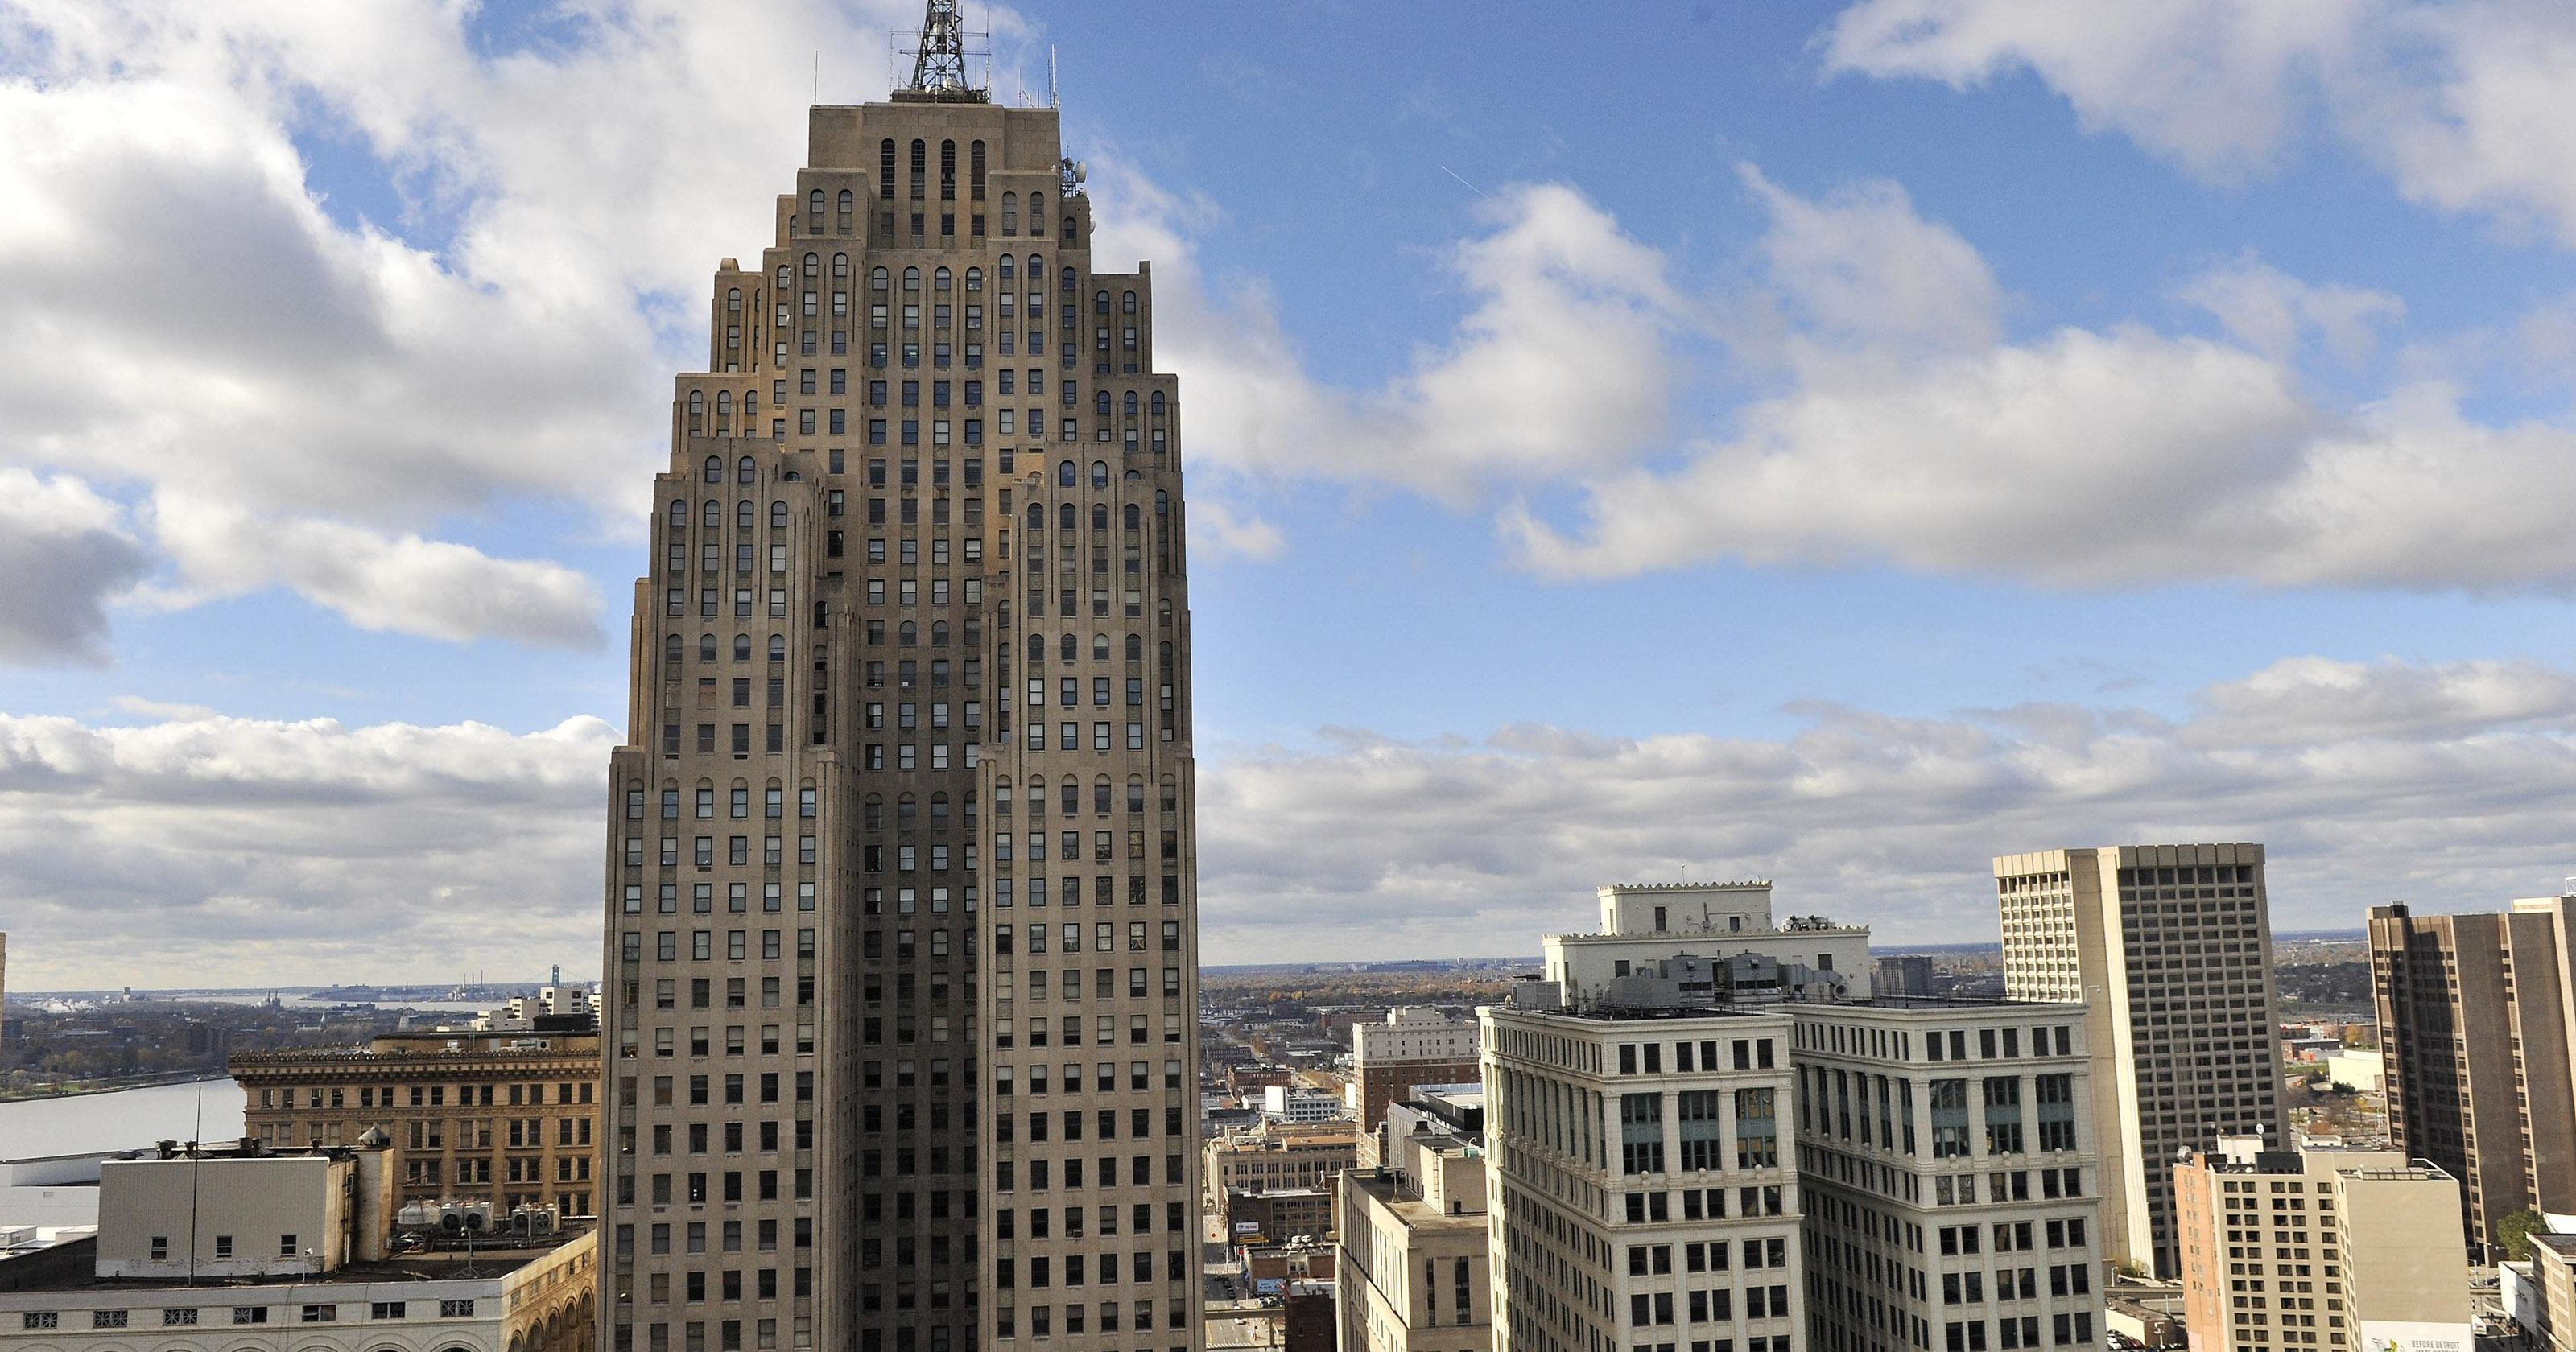 The Historic Penobscot Building - Whats to do in: Your City?